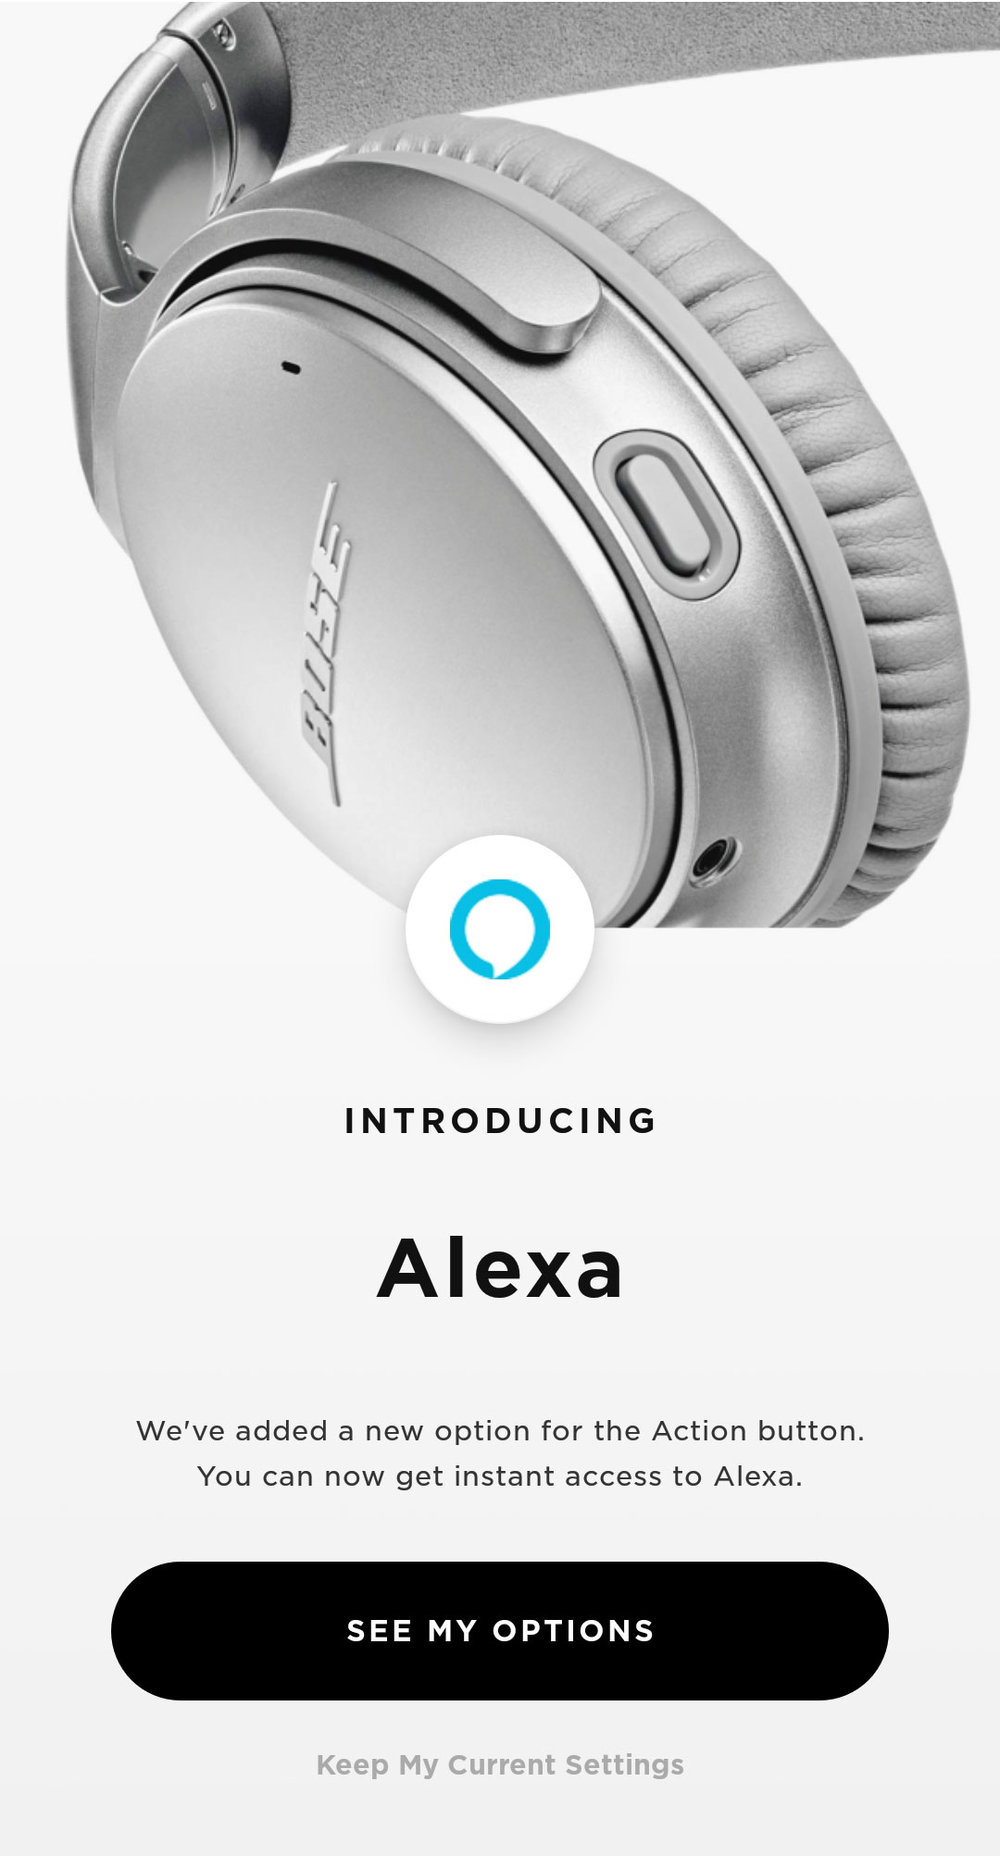 In the Bose Connect app, I designed a flow to install Alexa from the Alexa app.